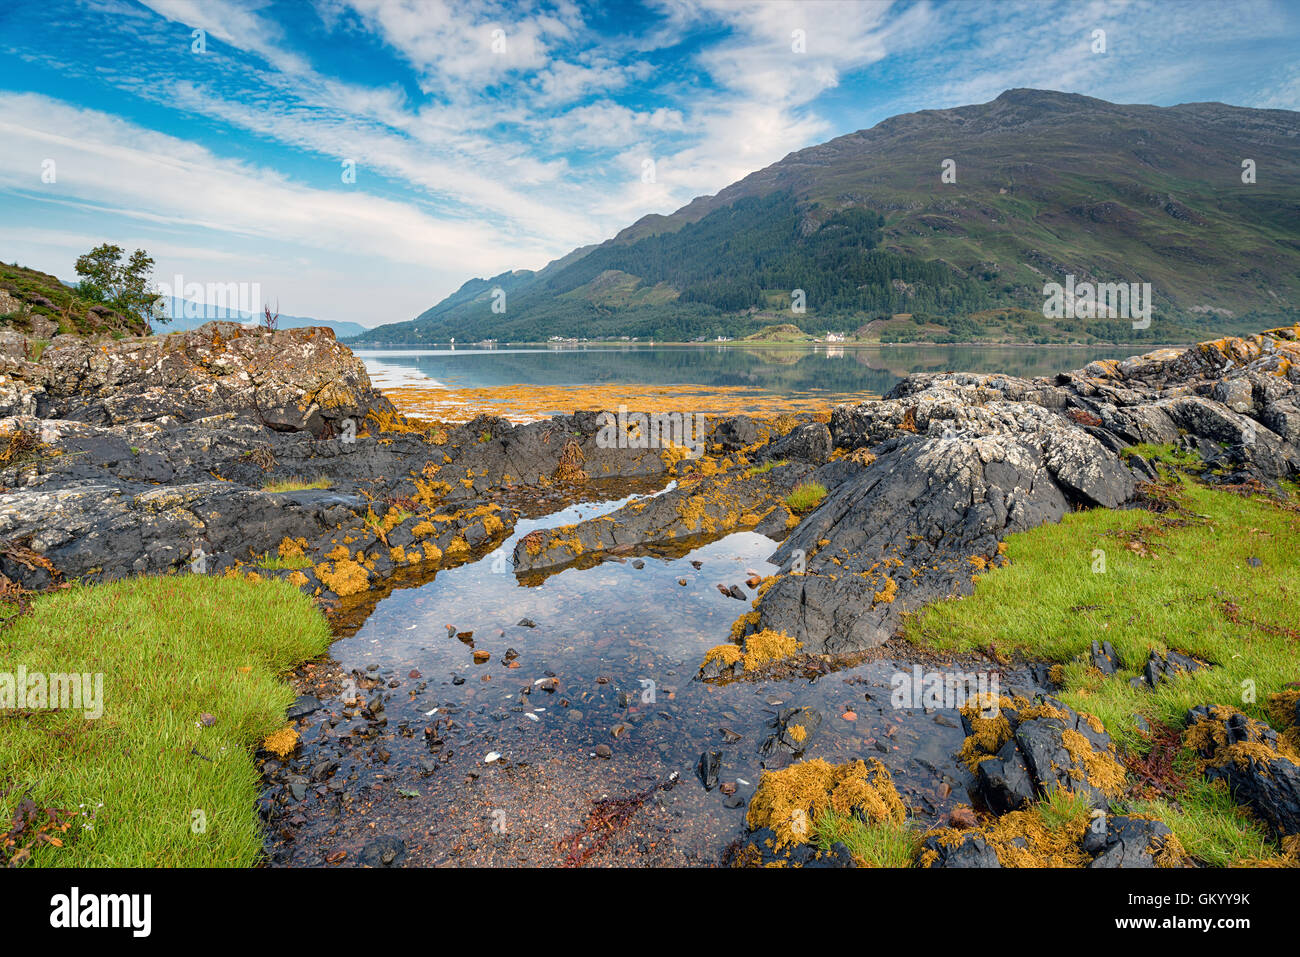 The shores of Loch Duich with bright green grassy samphire and weathered rocks - Stock Image